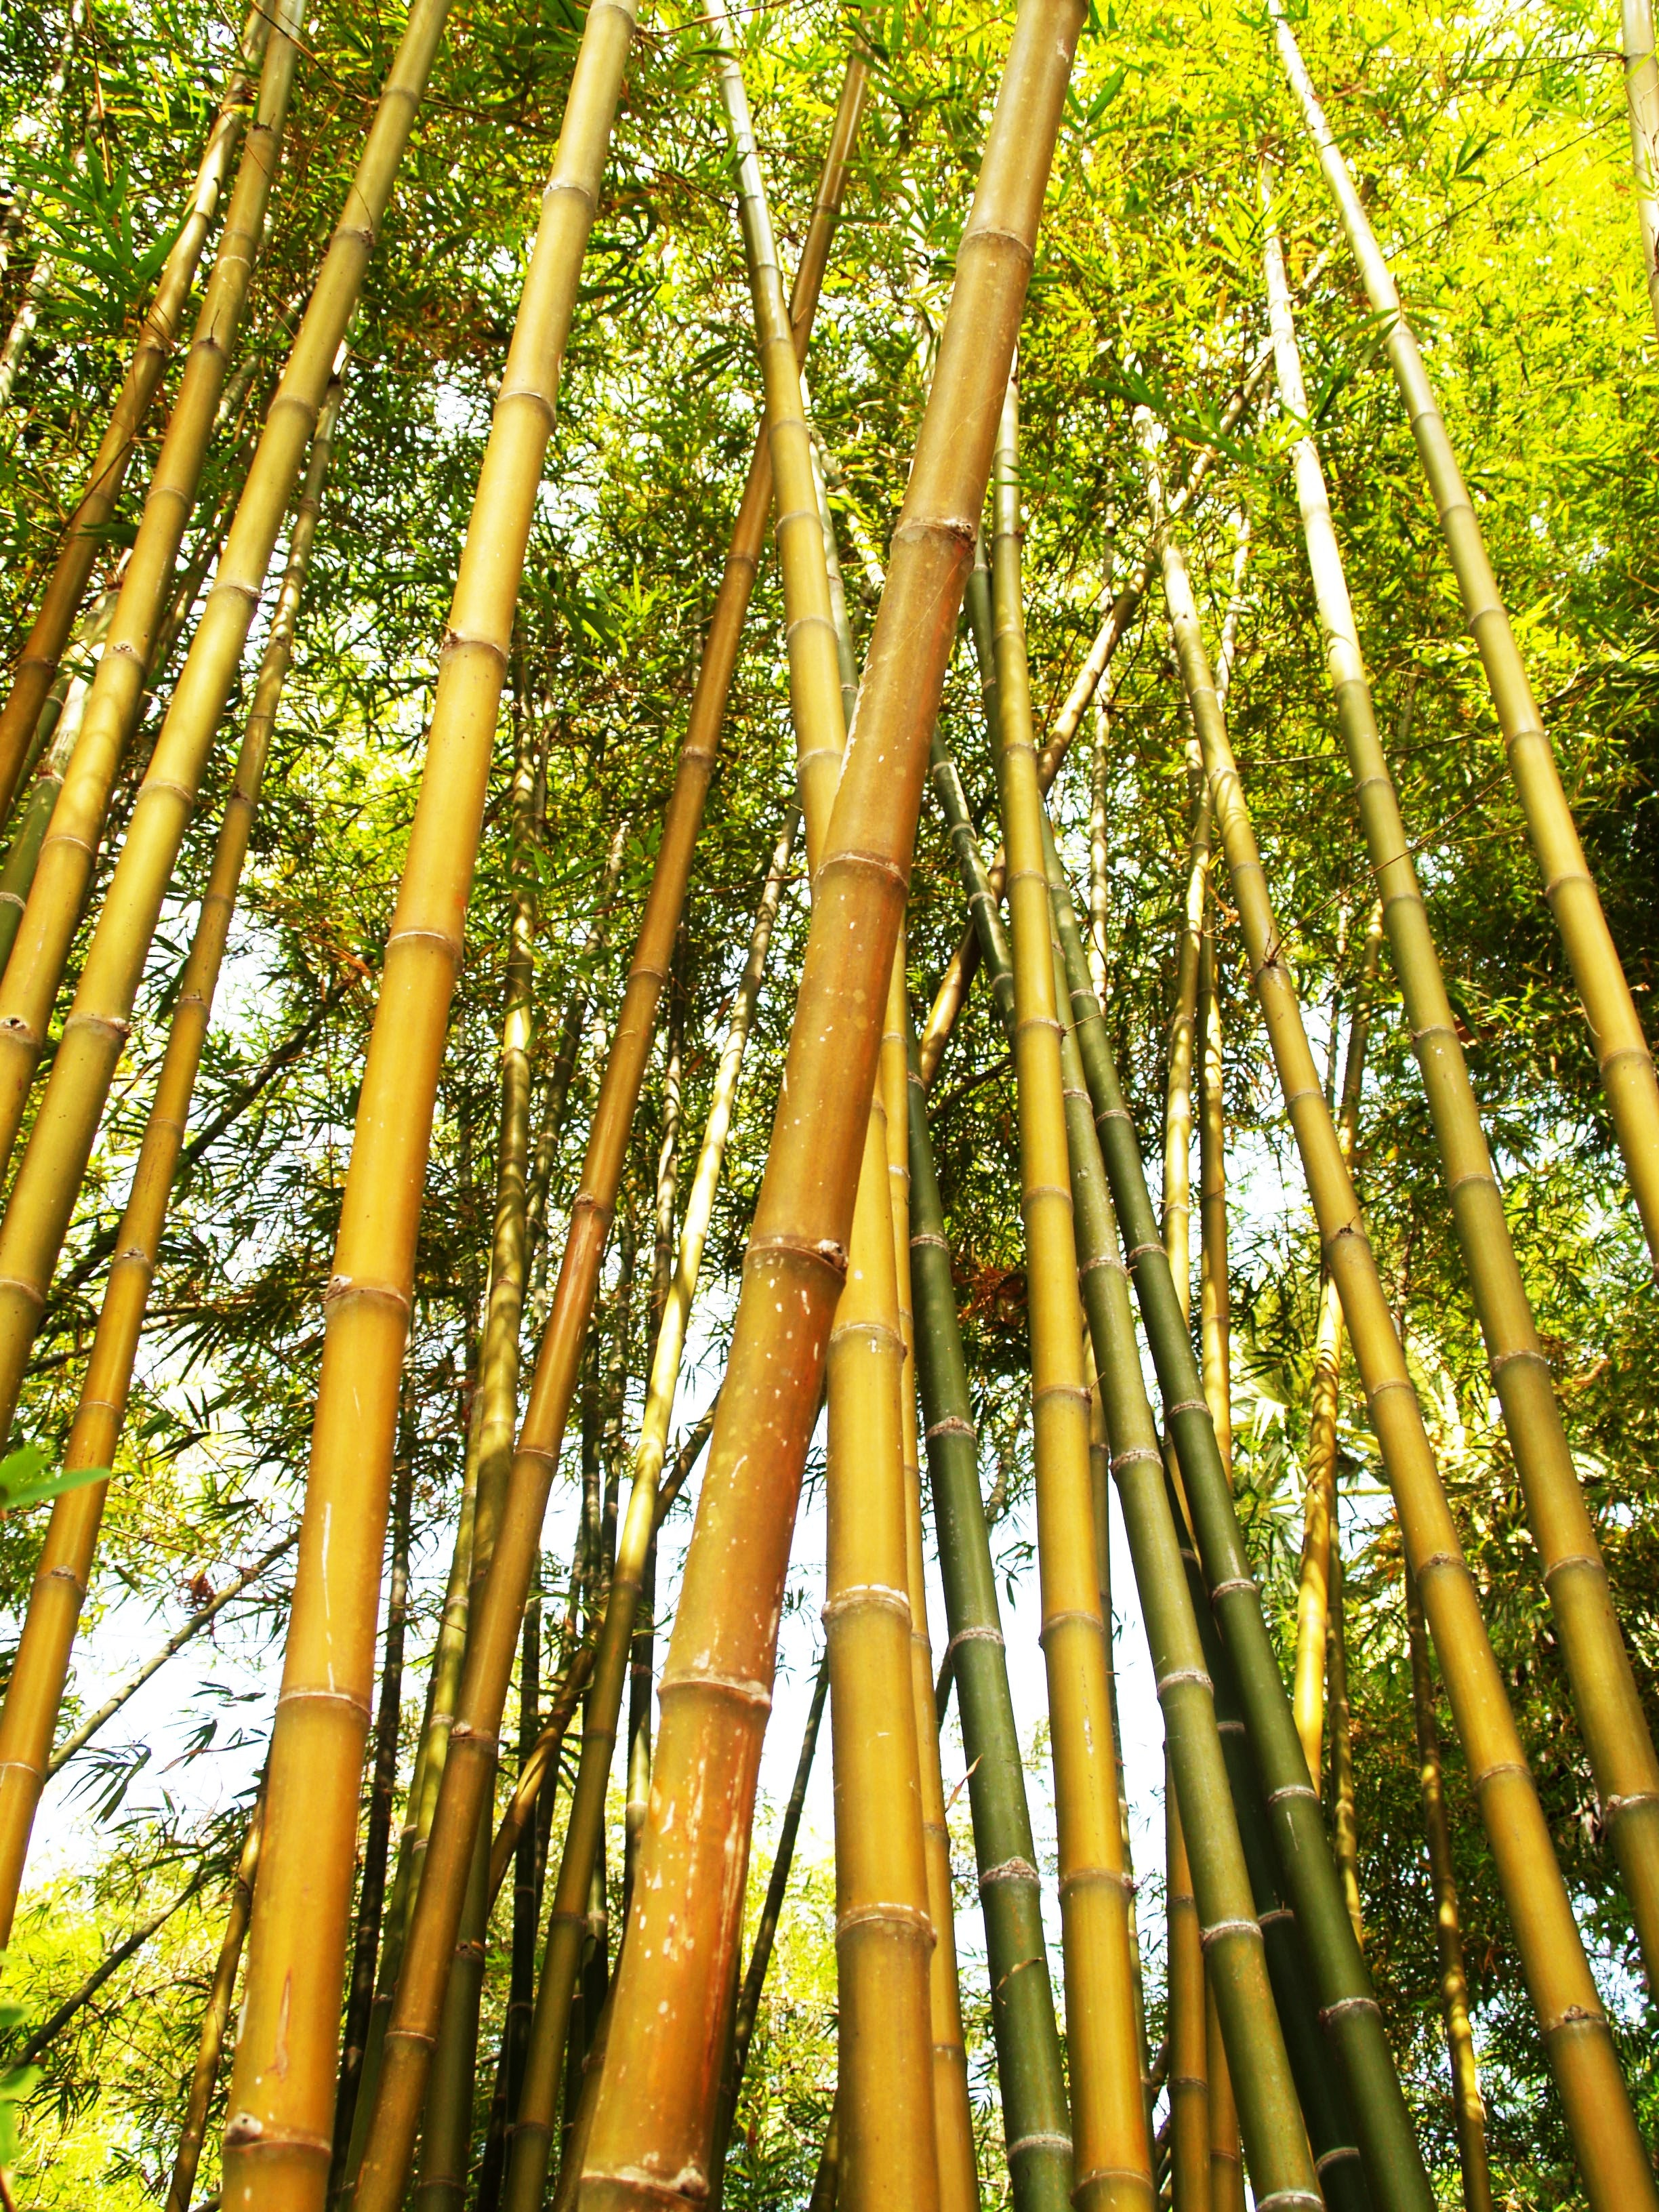 bamboo-tree-during-daytime-216611